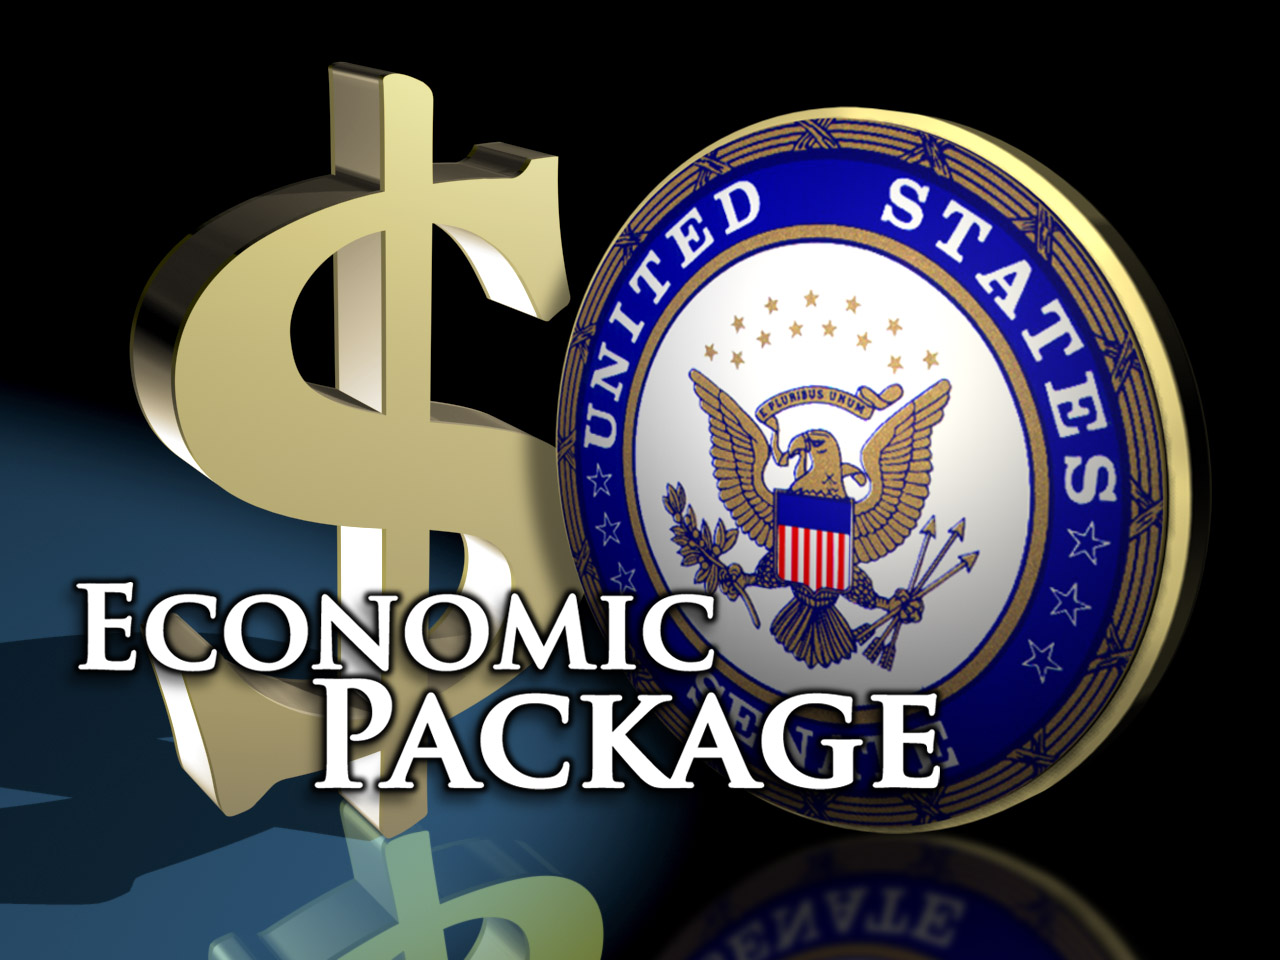 us stimulus package essay Summary the economic stimulus package is a favorite target of republican  candidates and groups, but more than a few ads falsely claim it did.